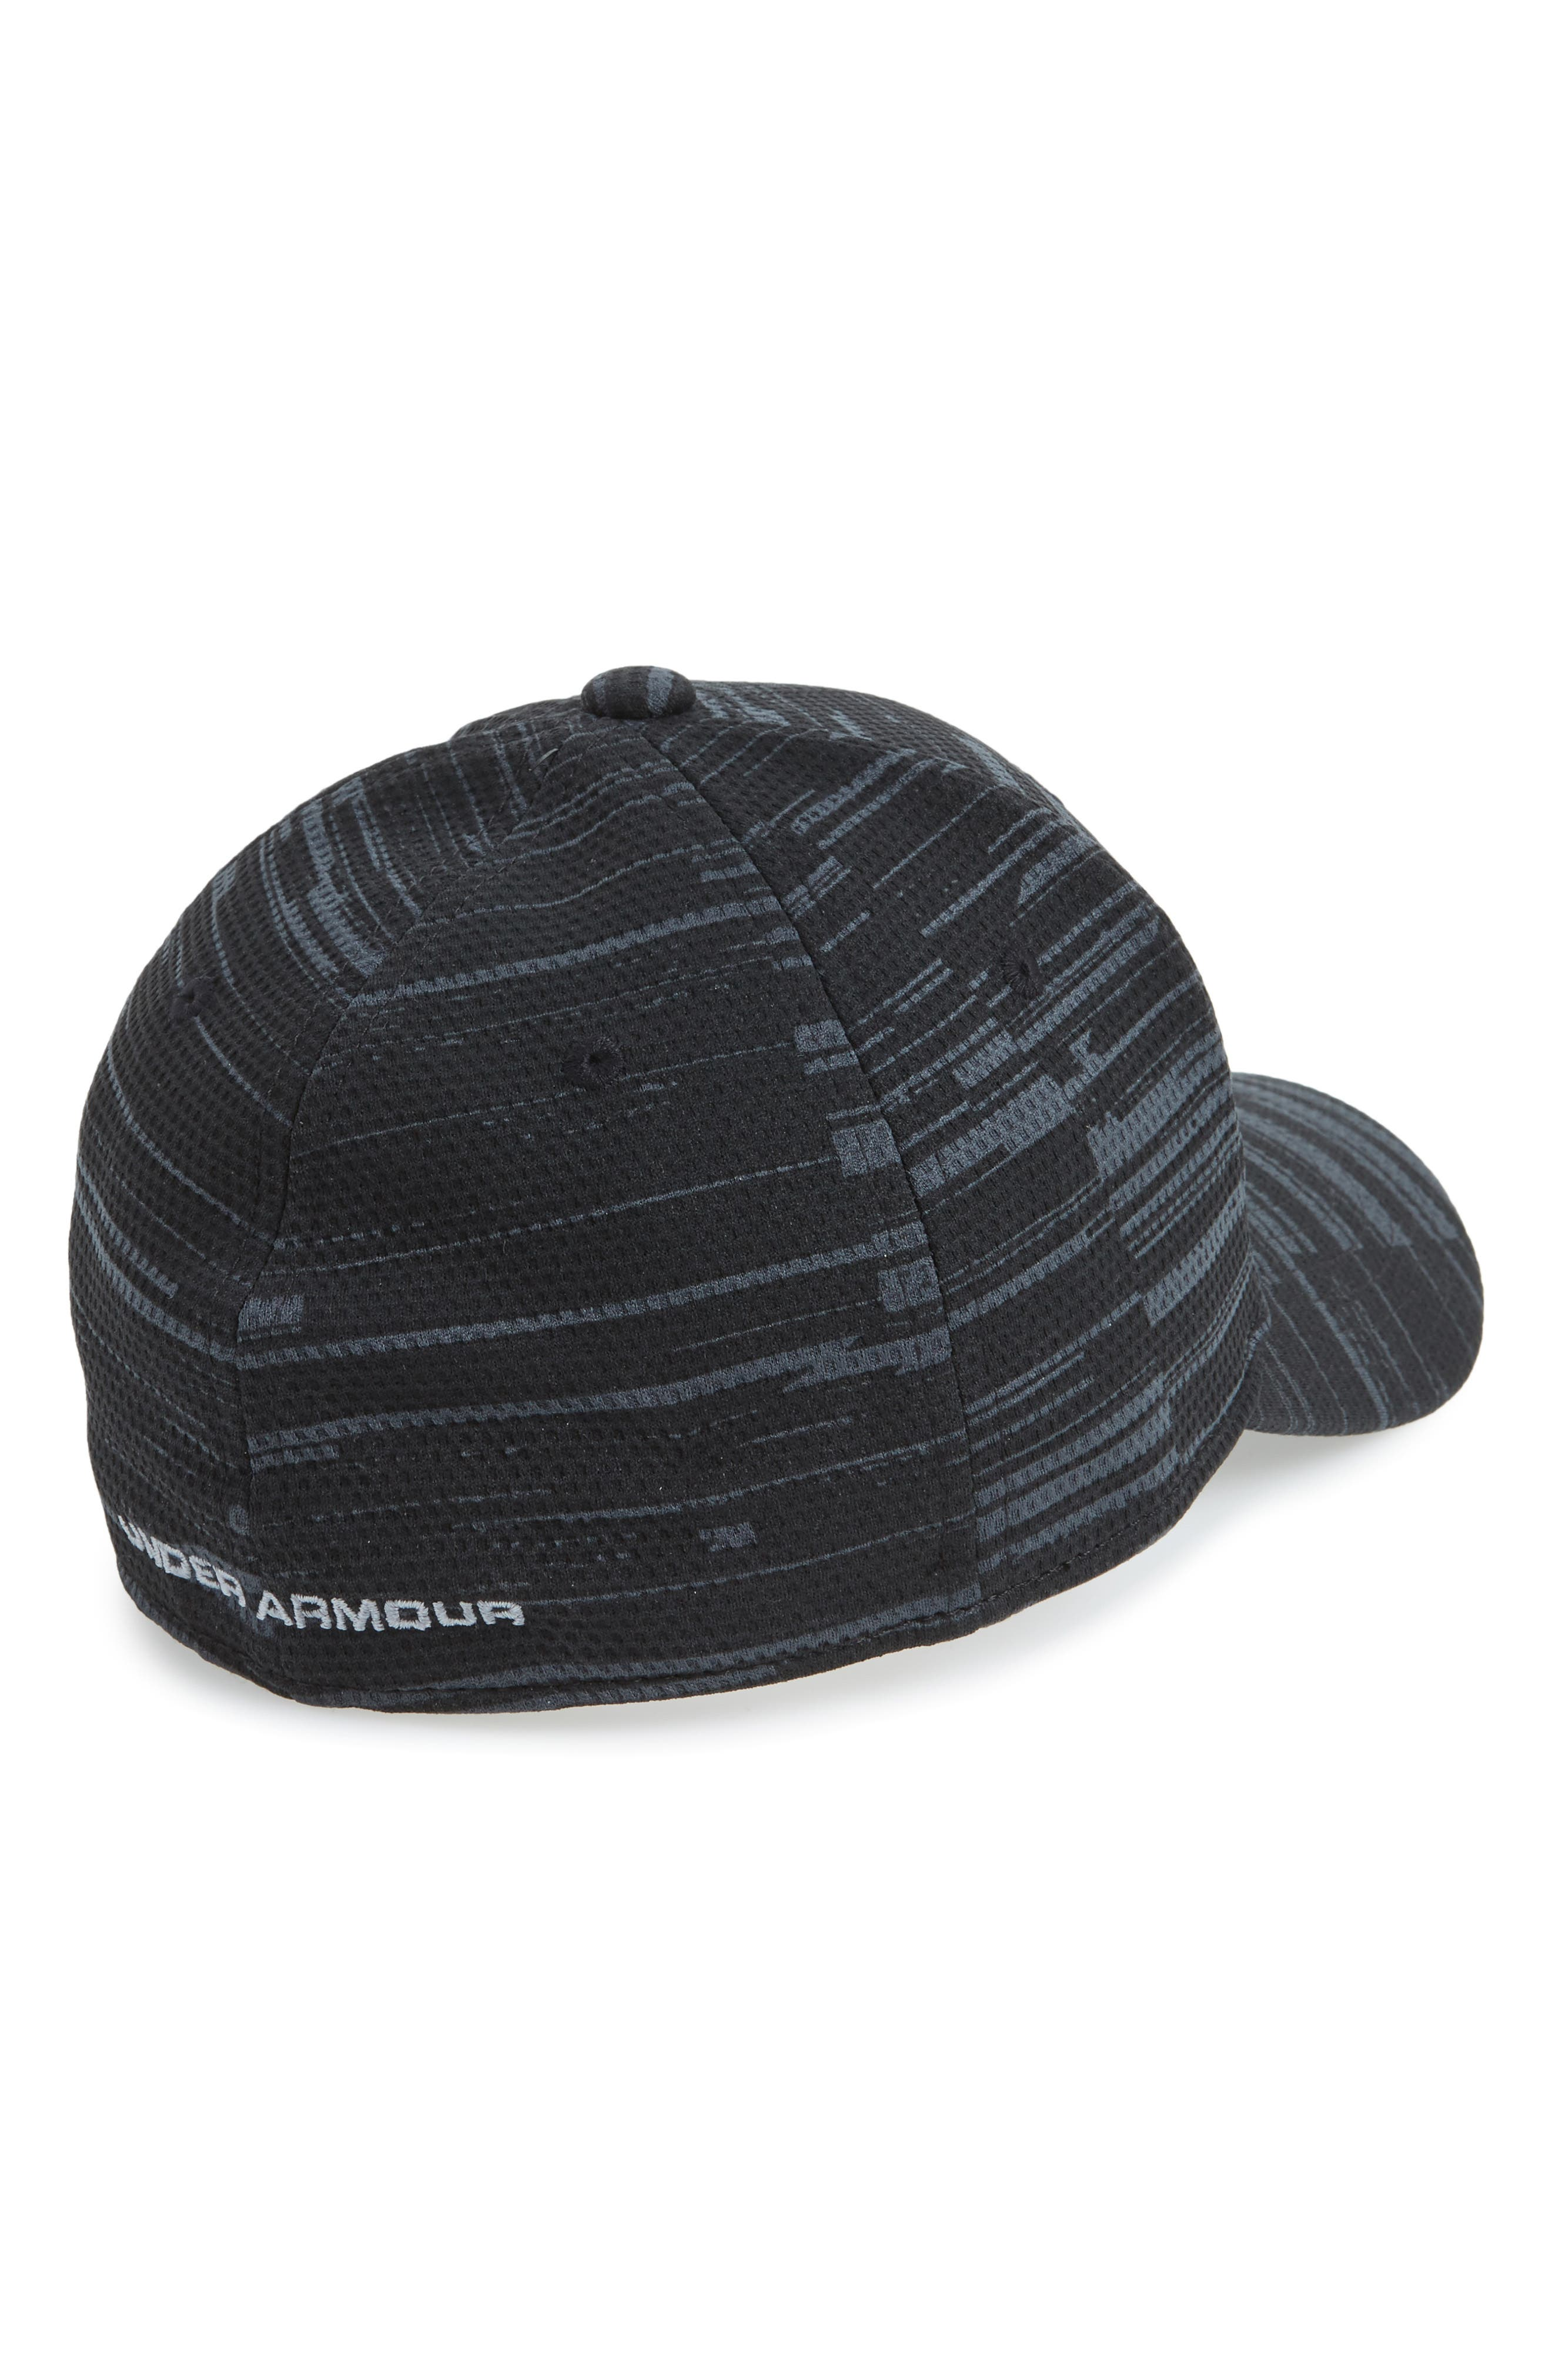 'Blitzing' Stretch Fit Baseball Cap,                             Alternate thumbnail 2, color,                             003